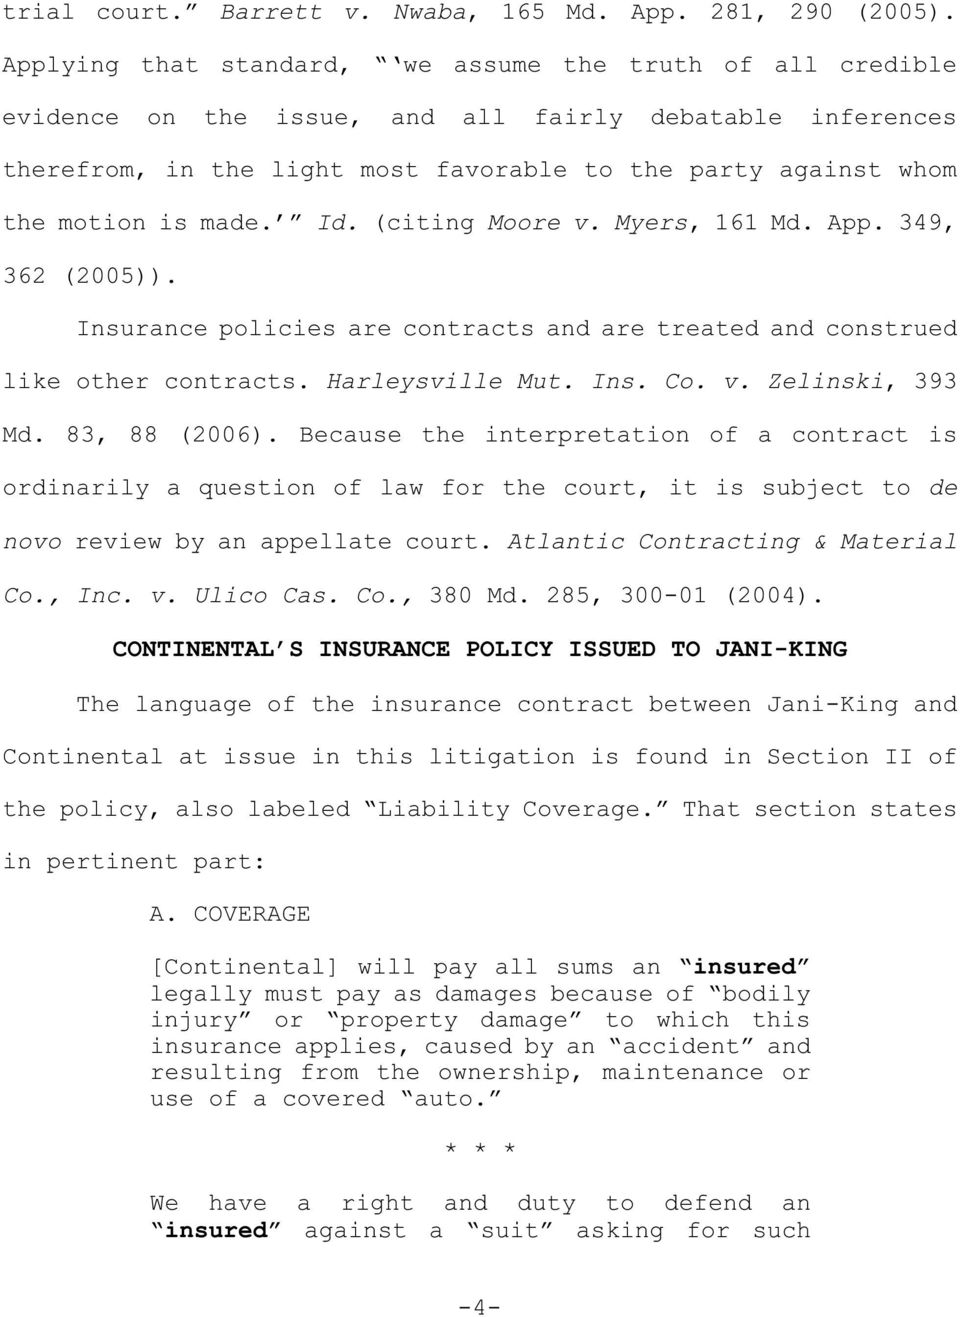 made. Id. (citing Moore v. Myers, 161 Md. App. 349, 362 (2005)). Insurance policies are contracts and are treated and construed like other contracts. Harleysville Mut. Ins. Co. v. Zelinski, 393 Md.